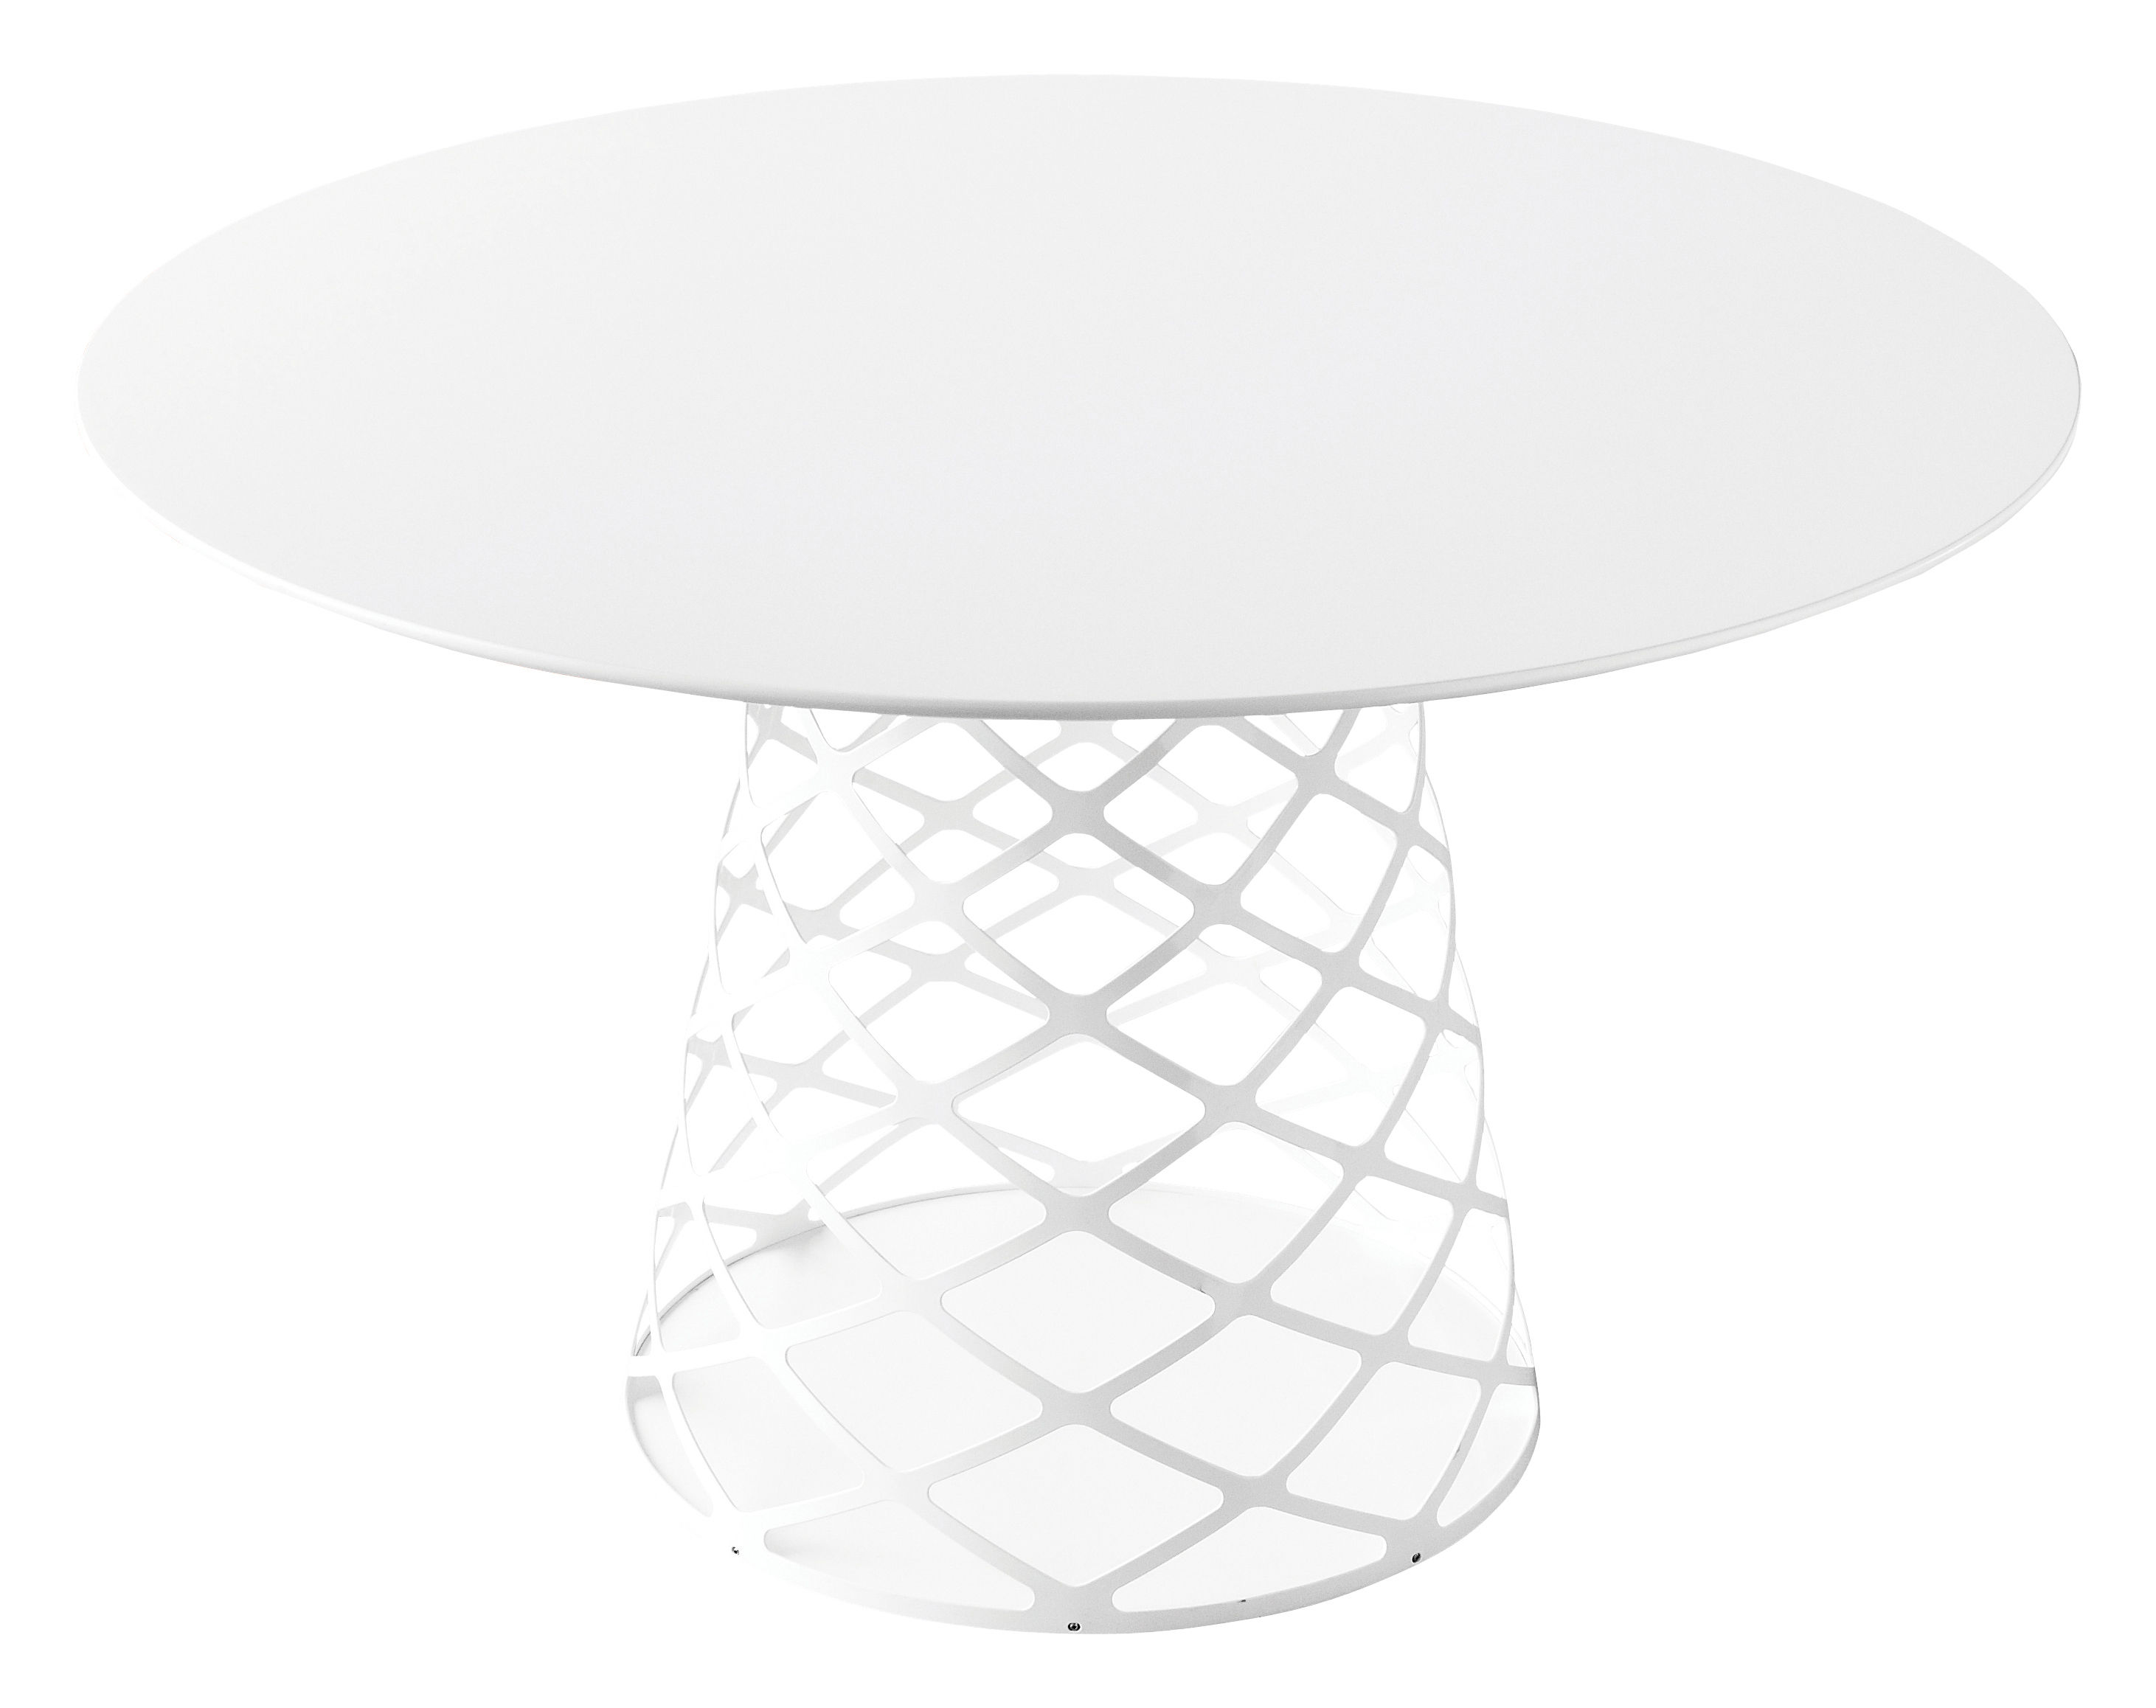 Furniture - Dining Tables - Aoyama Table - Ø 120 cm by Gubi - White - Laminate, Stainless steel